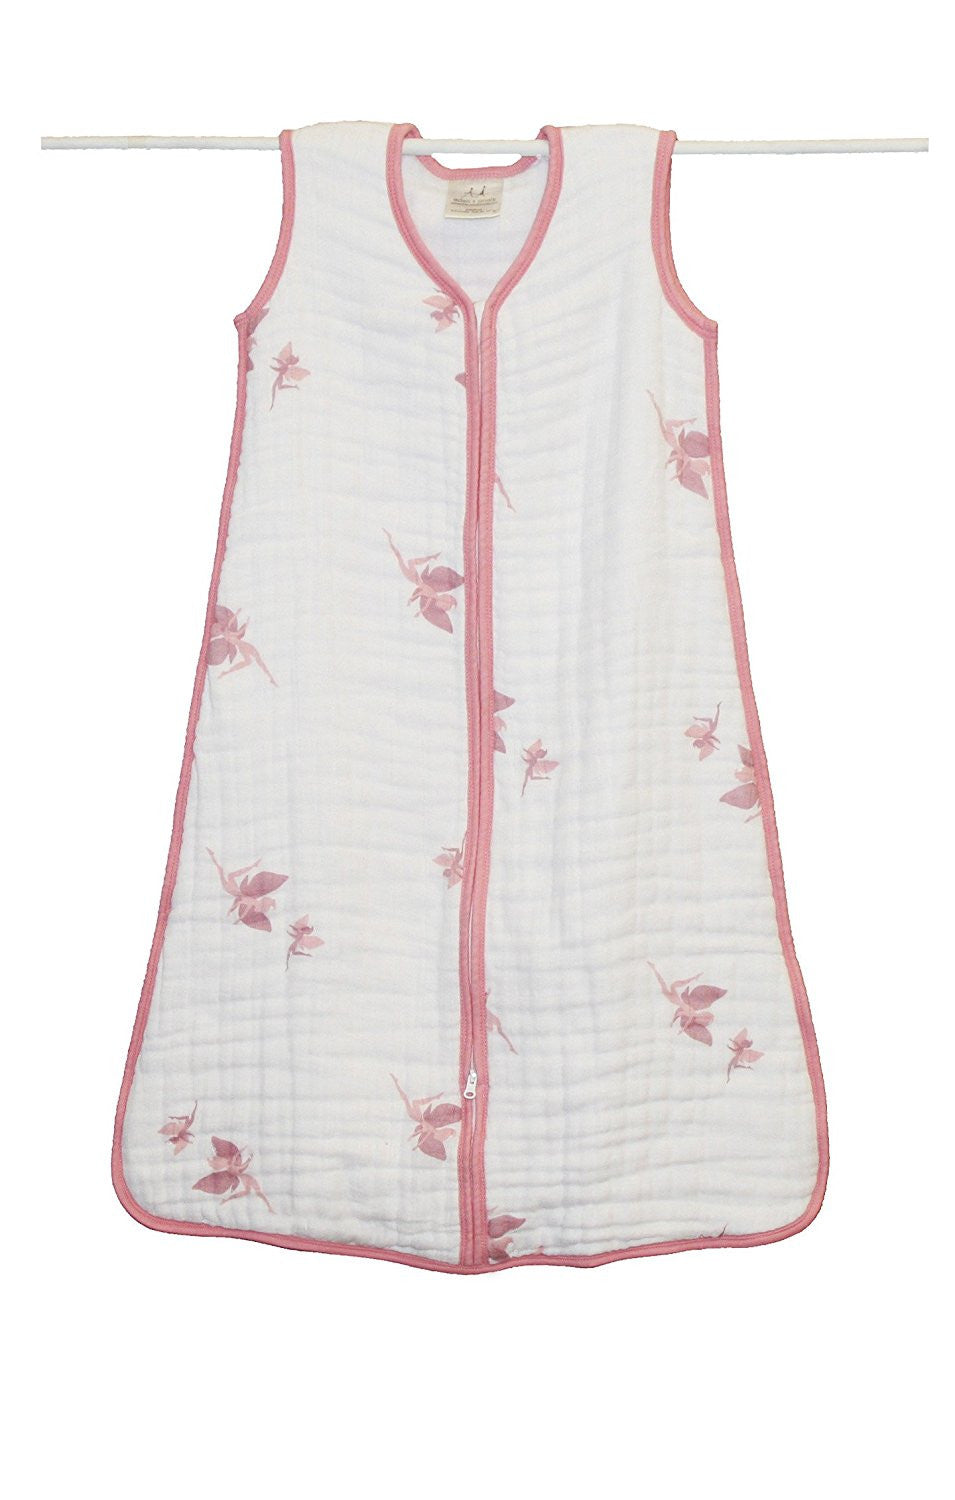 Aden + Anais Cozy Muslin Sleeping Bag - Fairies